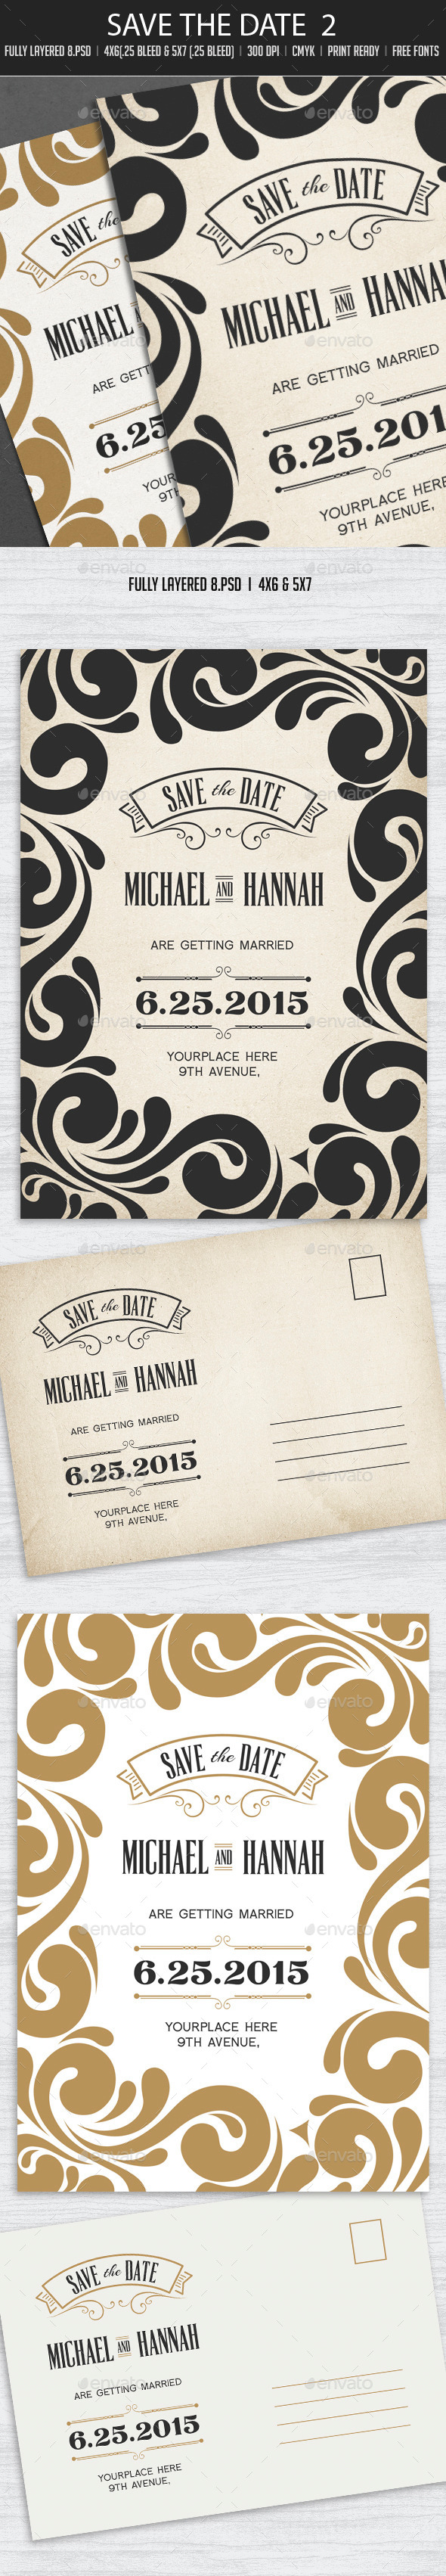 Save The Date Postcard 2 - Weddings Cards & Invites